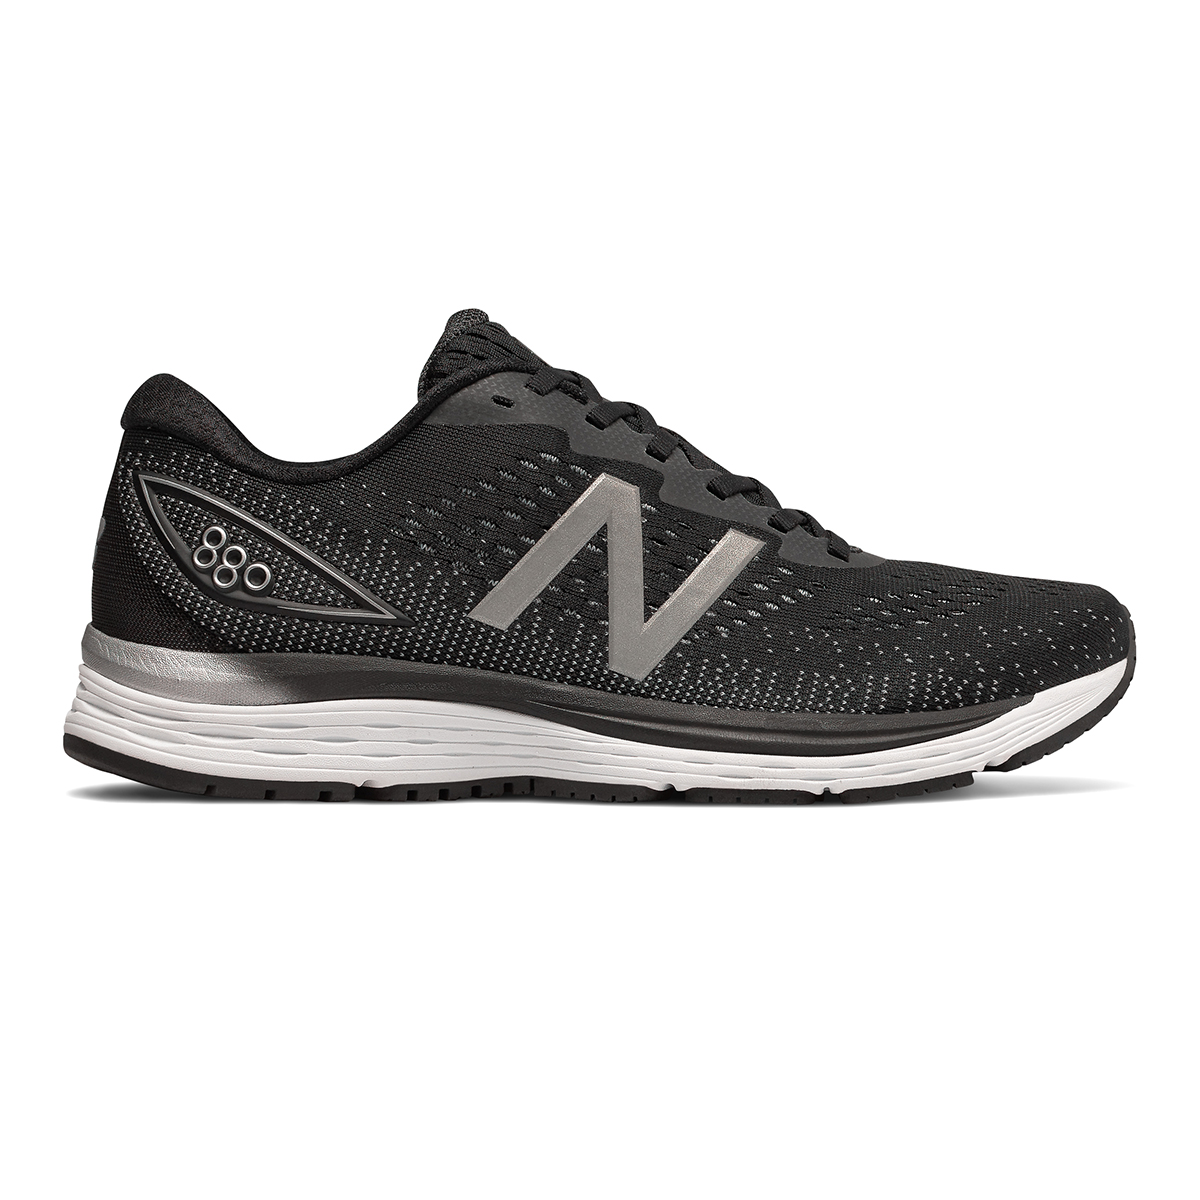 Men's New Balance 880V9 Running Shoe - Color: Black / Steel (Regular Width) - Size: 8, Black / Steel, large, image 1